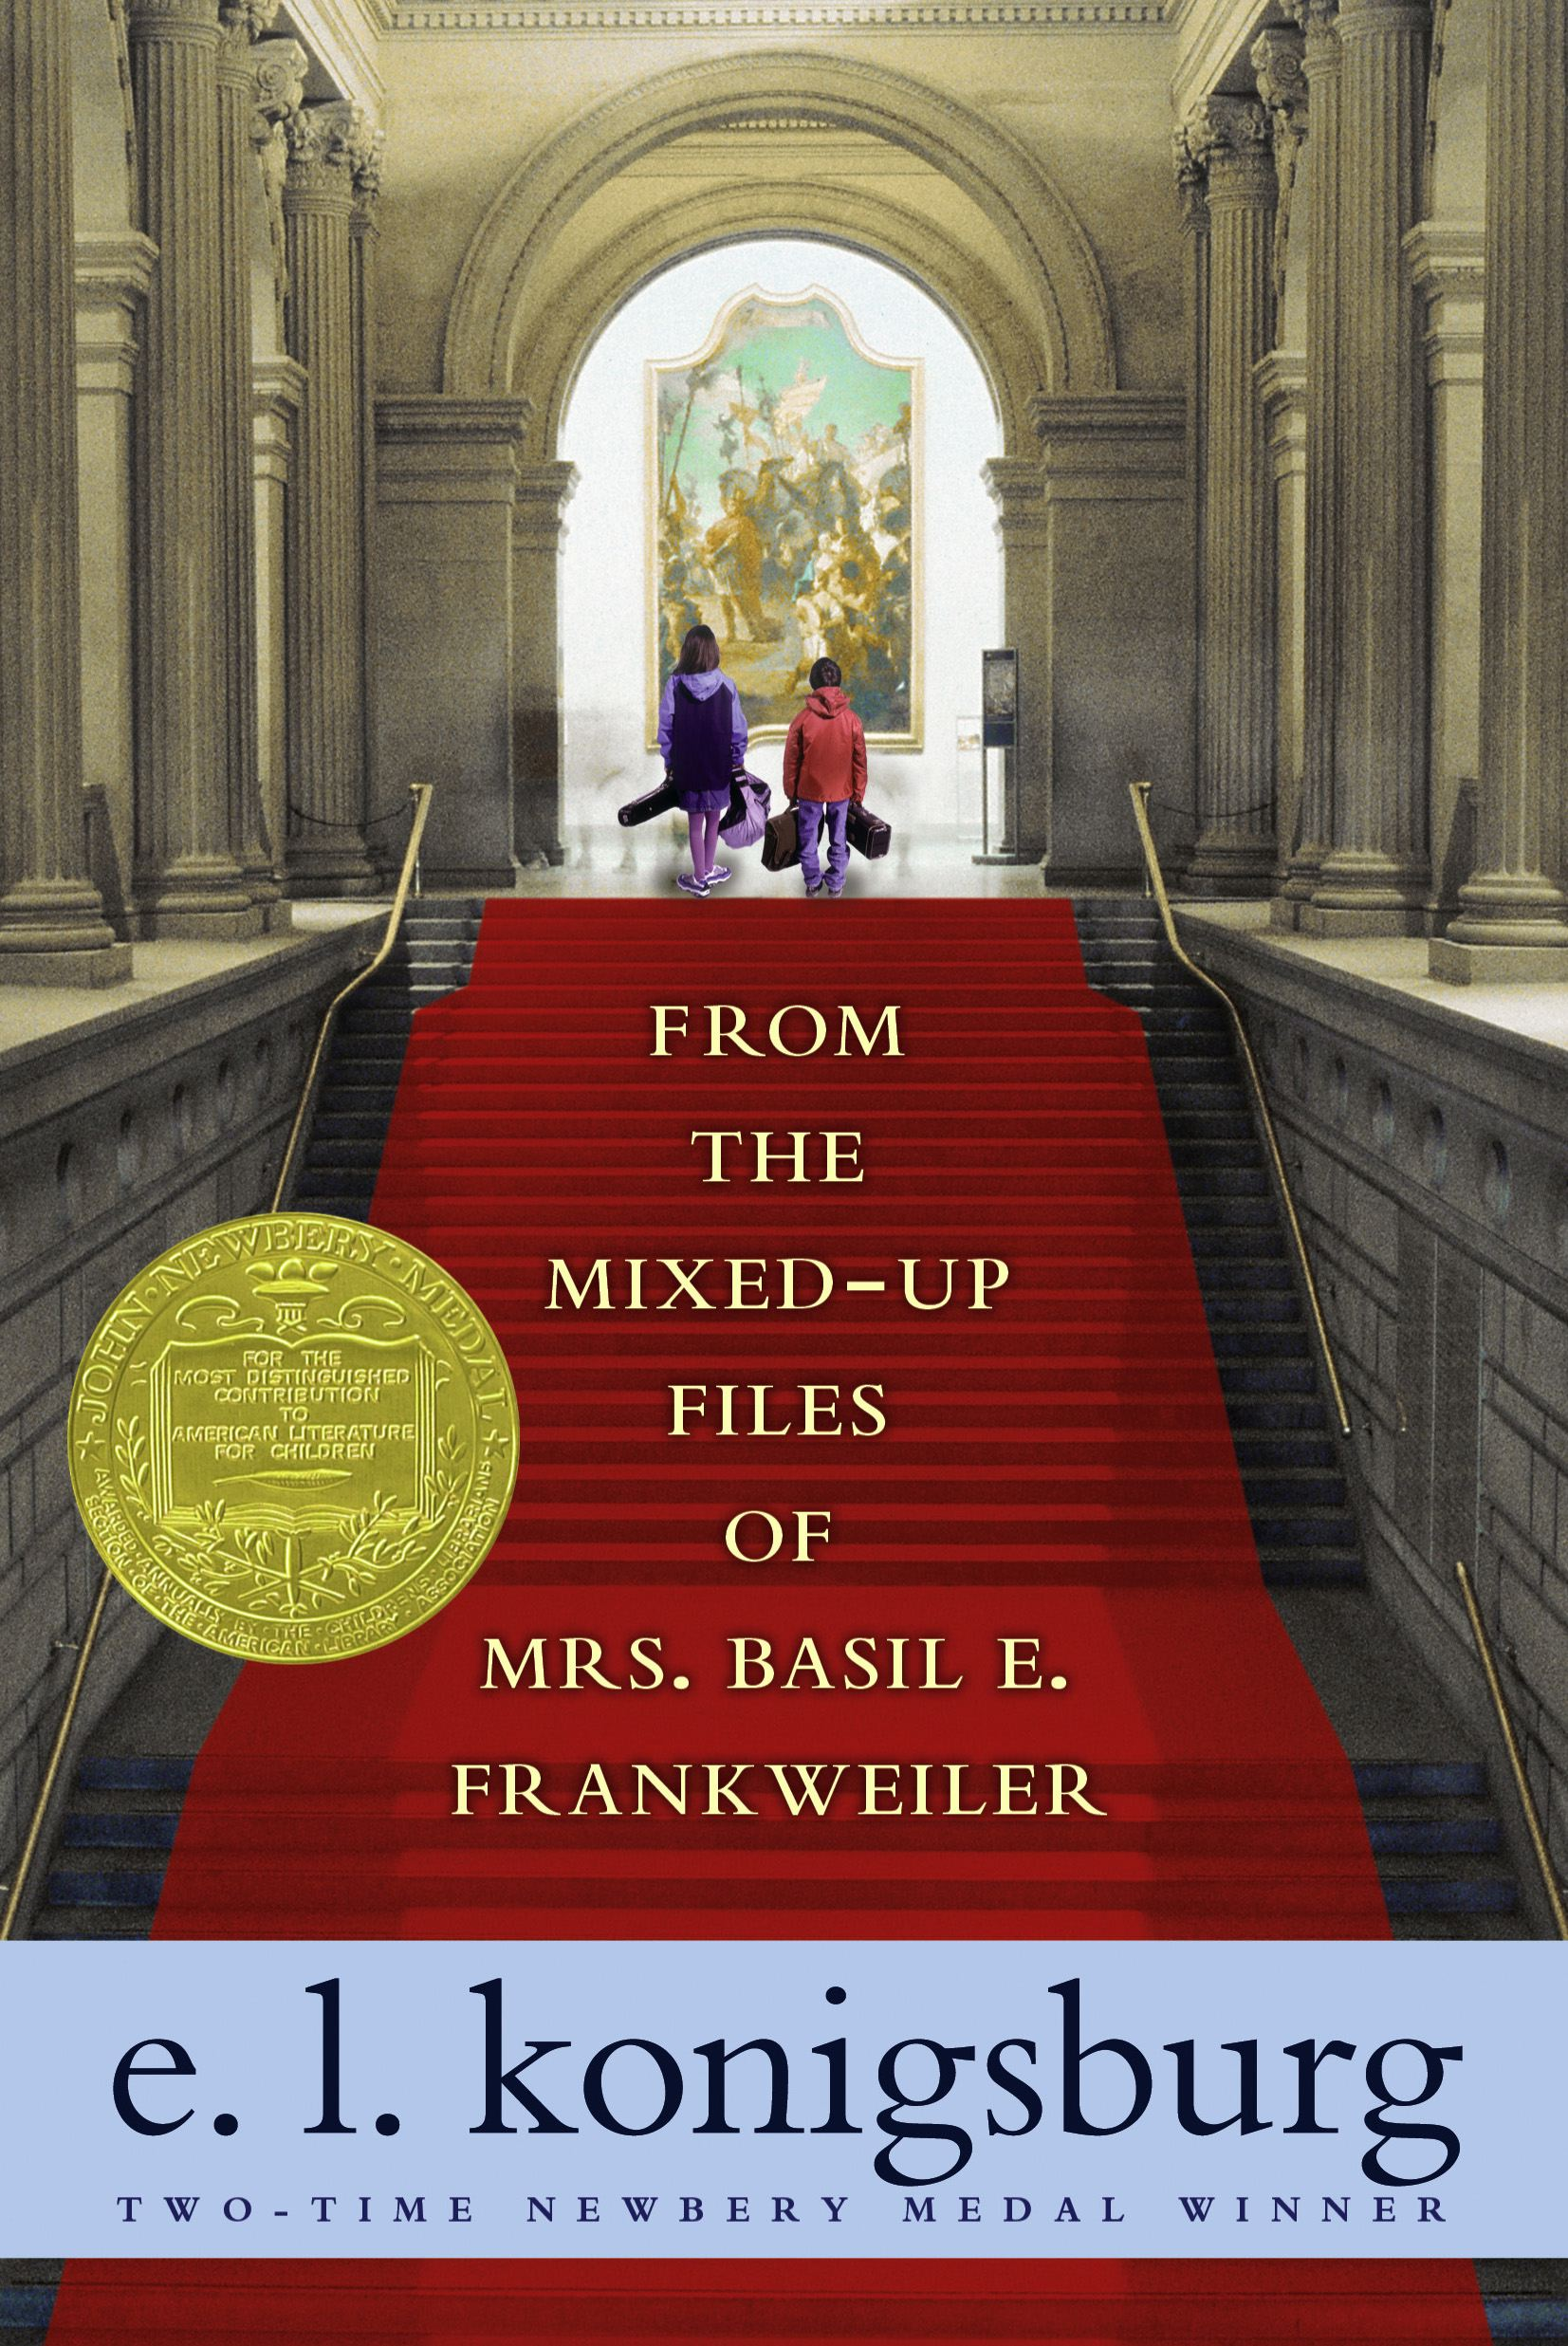 From the mixed up files of mrs basil e frankweiler 9781416949756 hr